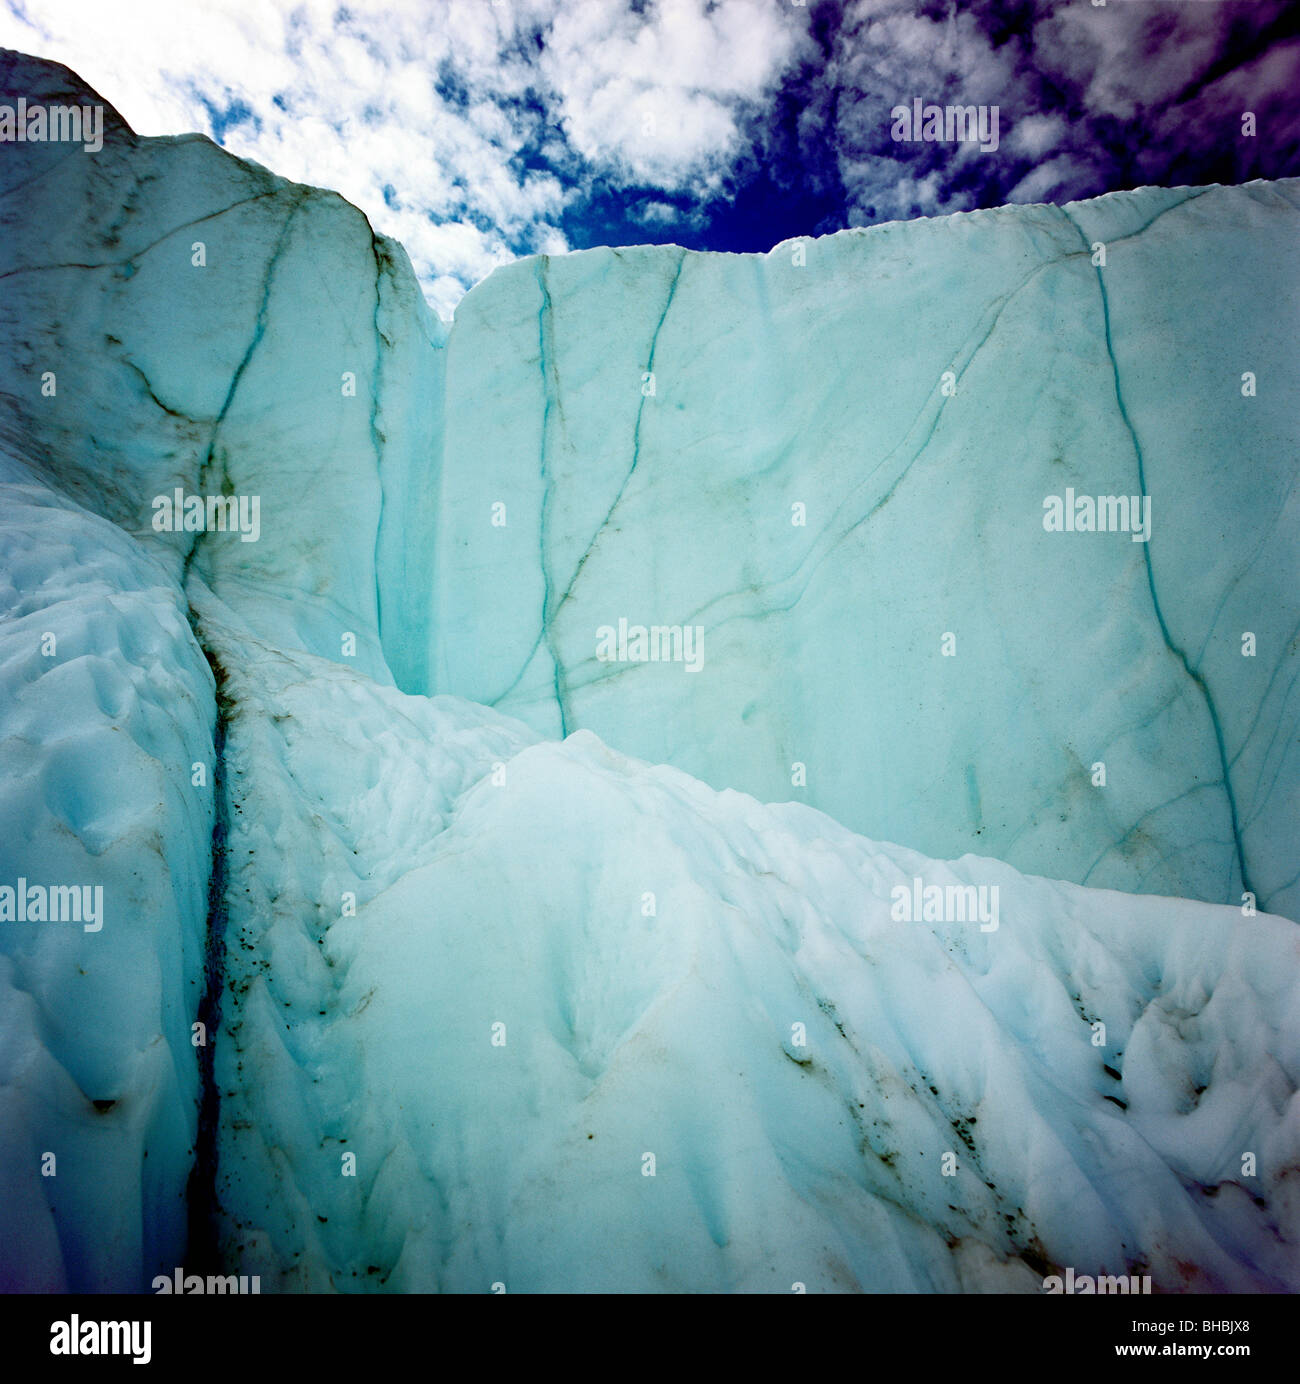 A unique photo from inside a crevasse on the Matanuska Glacier in Alaska where we can see how the glacier is melting - Stock Image